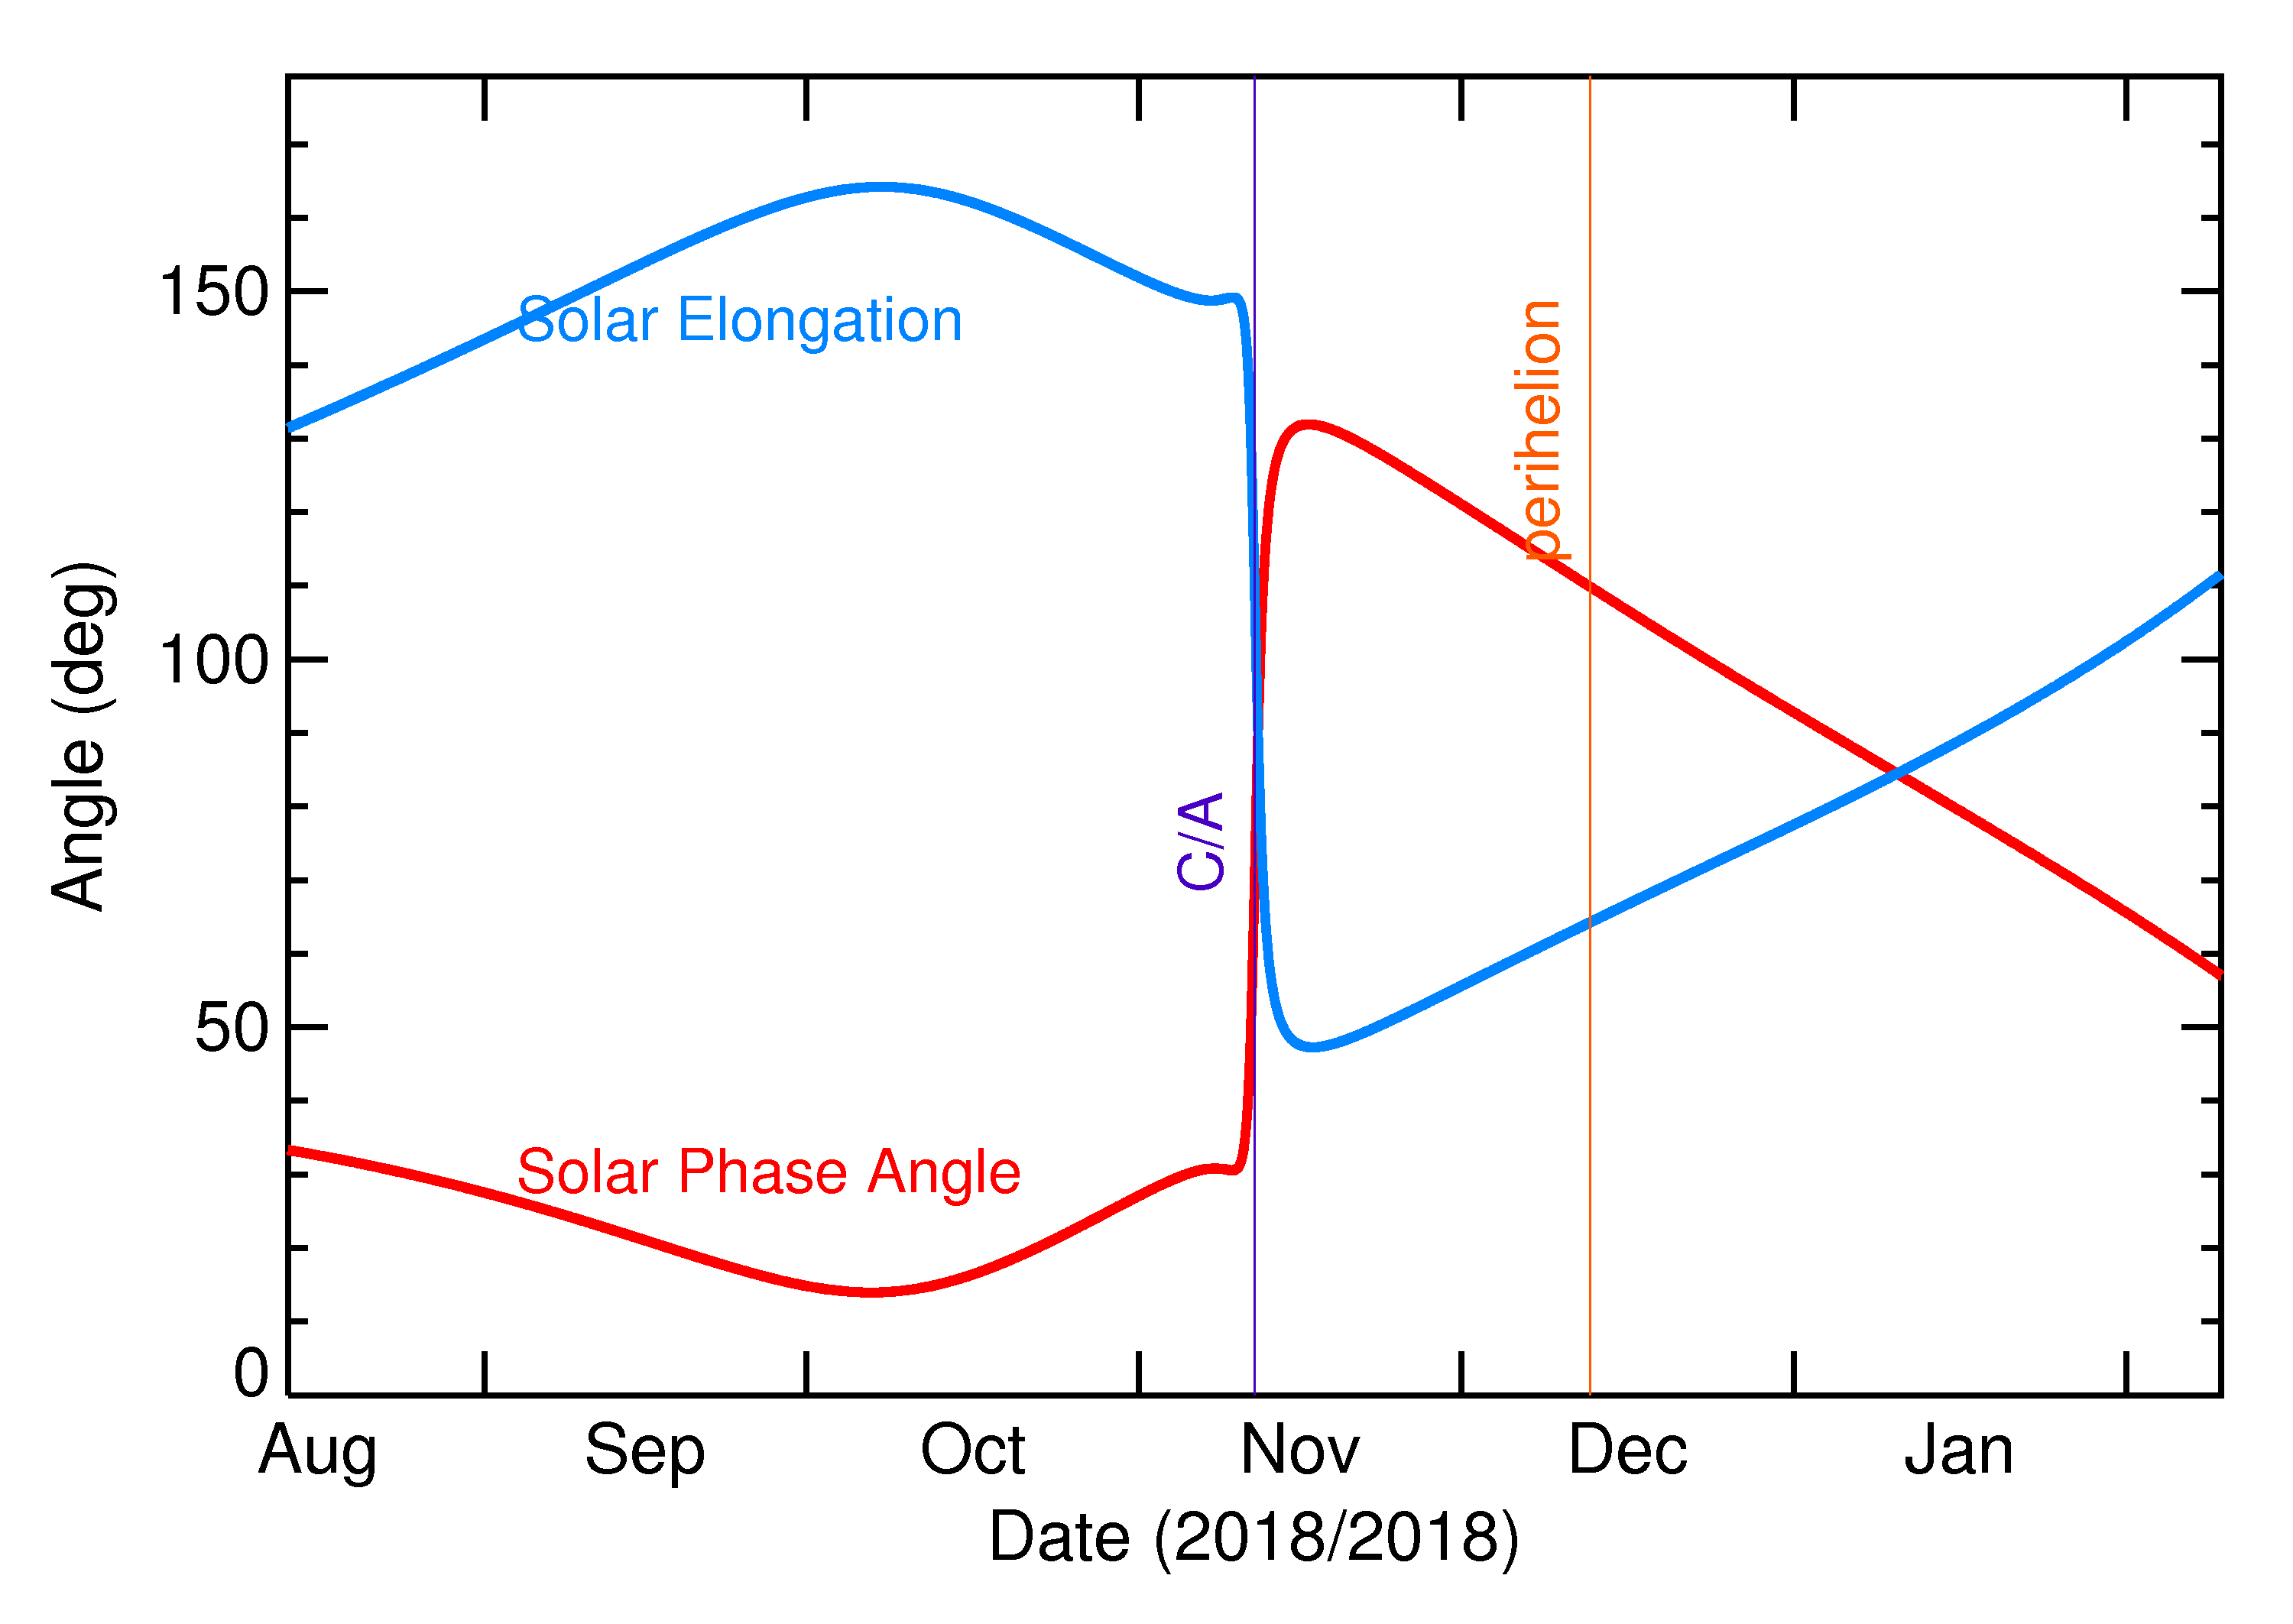 Solar Elongation and Solar Phase Angle of 2018 VX1 in the months around closest approach